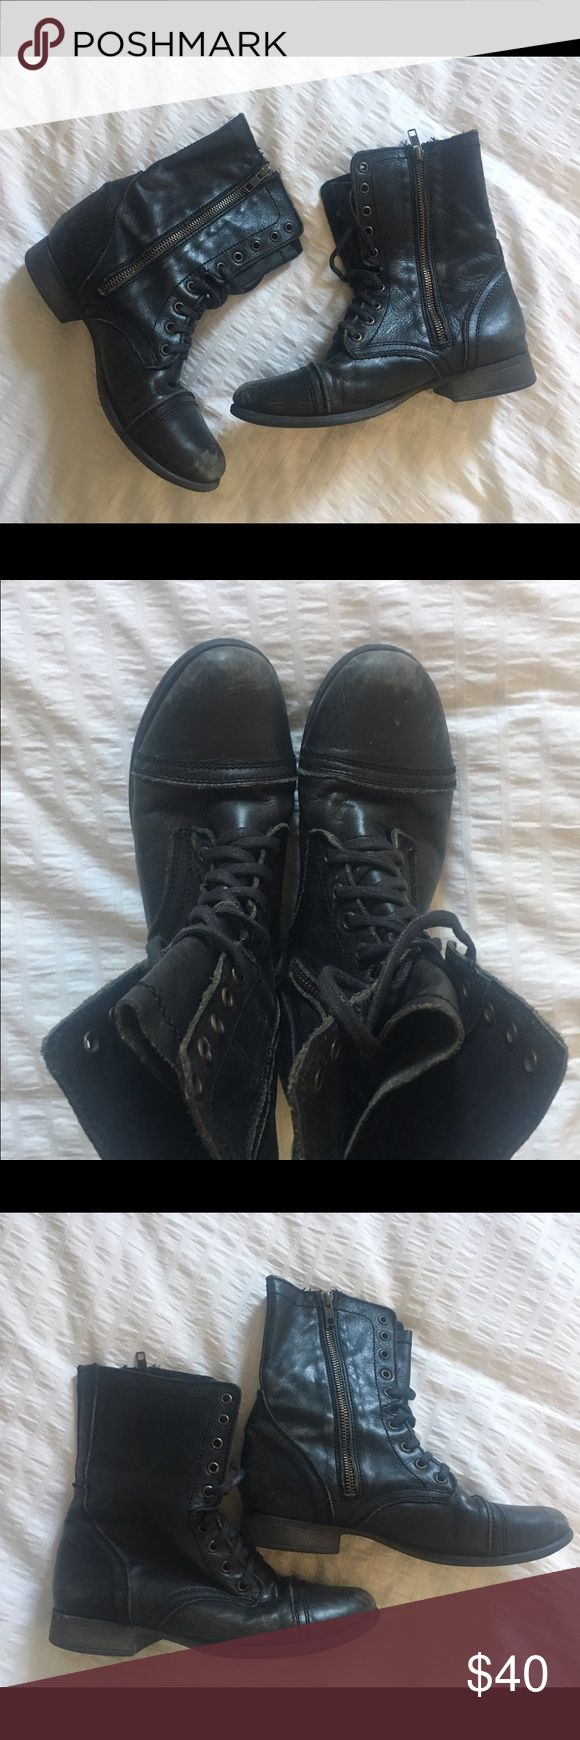 Steve Madden Combat Boots Clearly worn but I think the worn-ness makes them look super cool! Besides the leather wearing, in good shape! Steve Madden Shoes Combat & Moto Boots